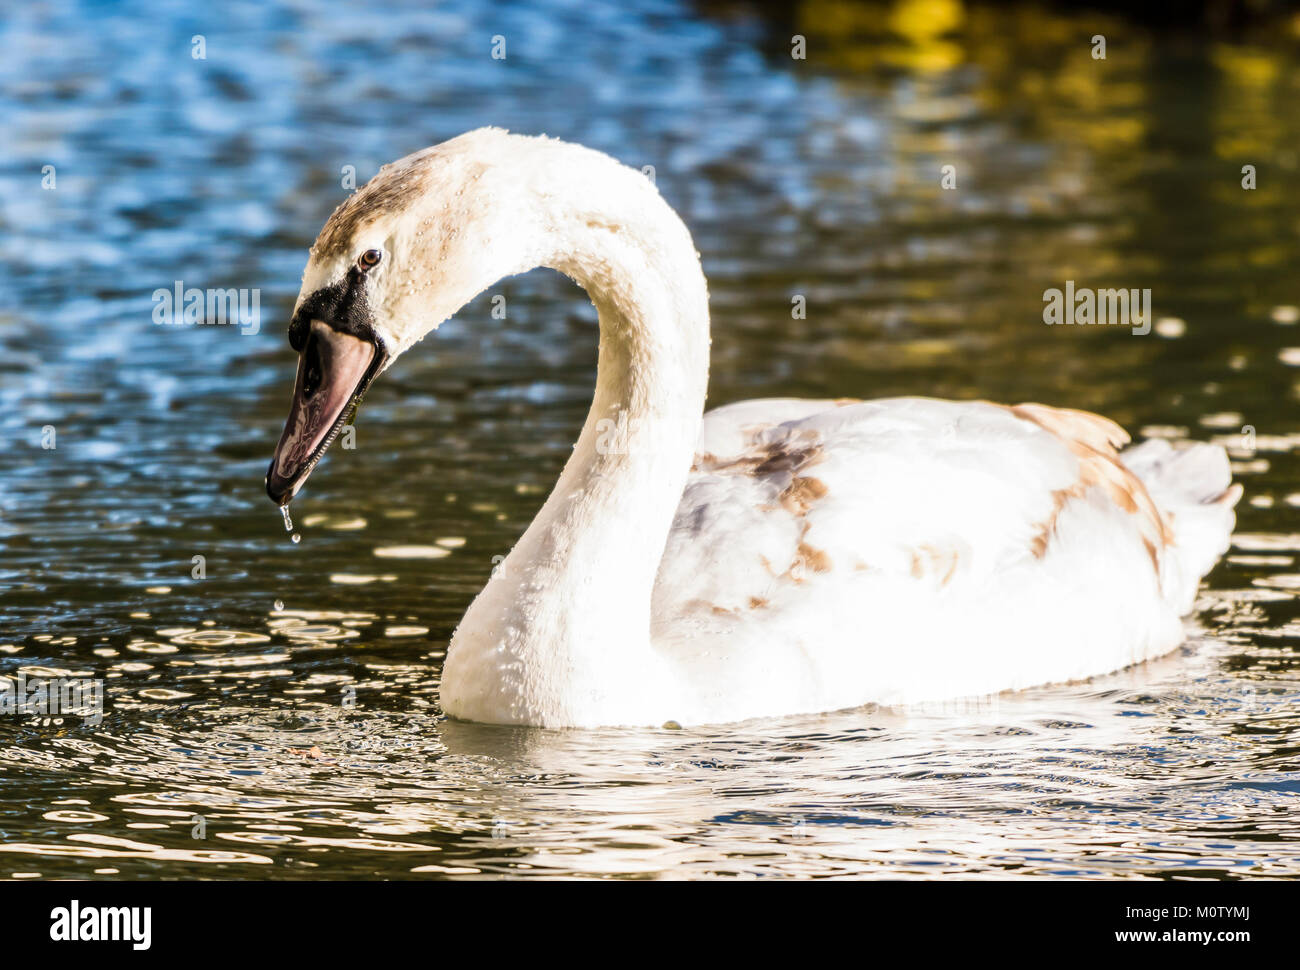 Mute Swan on the Octagon Lake, Stowe, Buckinghamshire, UK Stock Photo